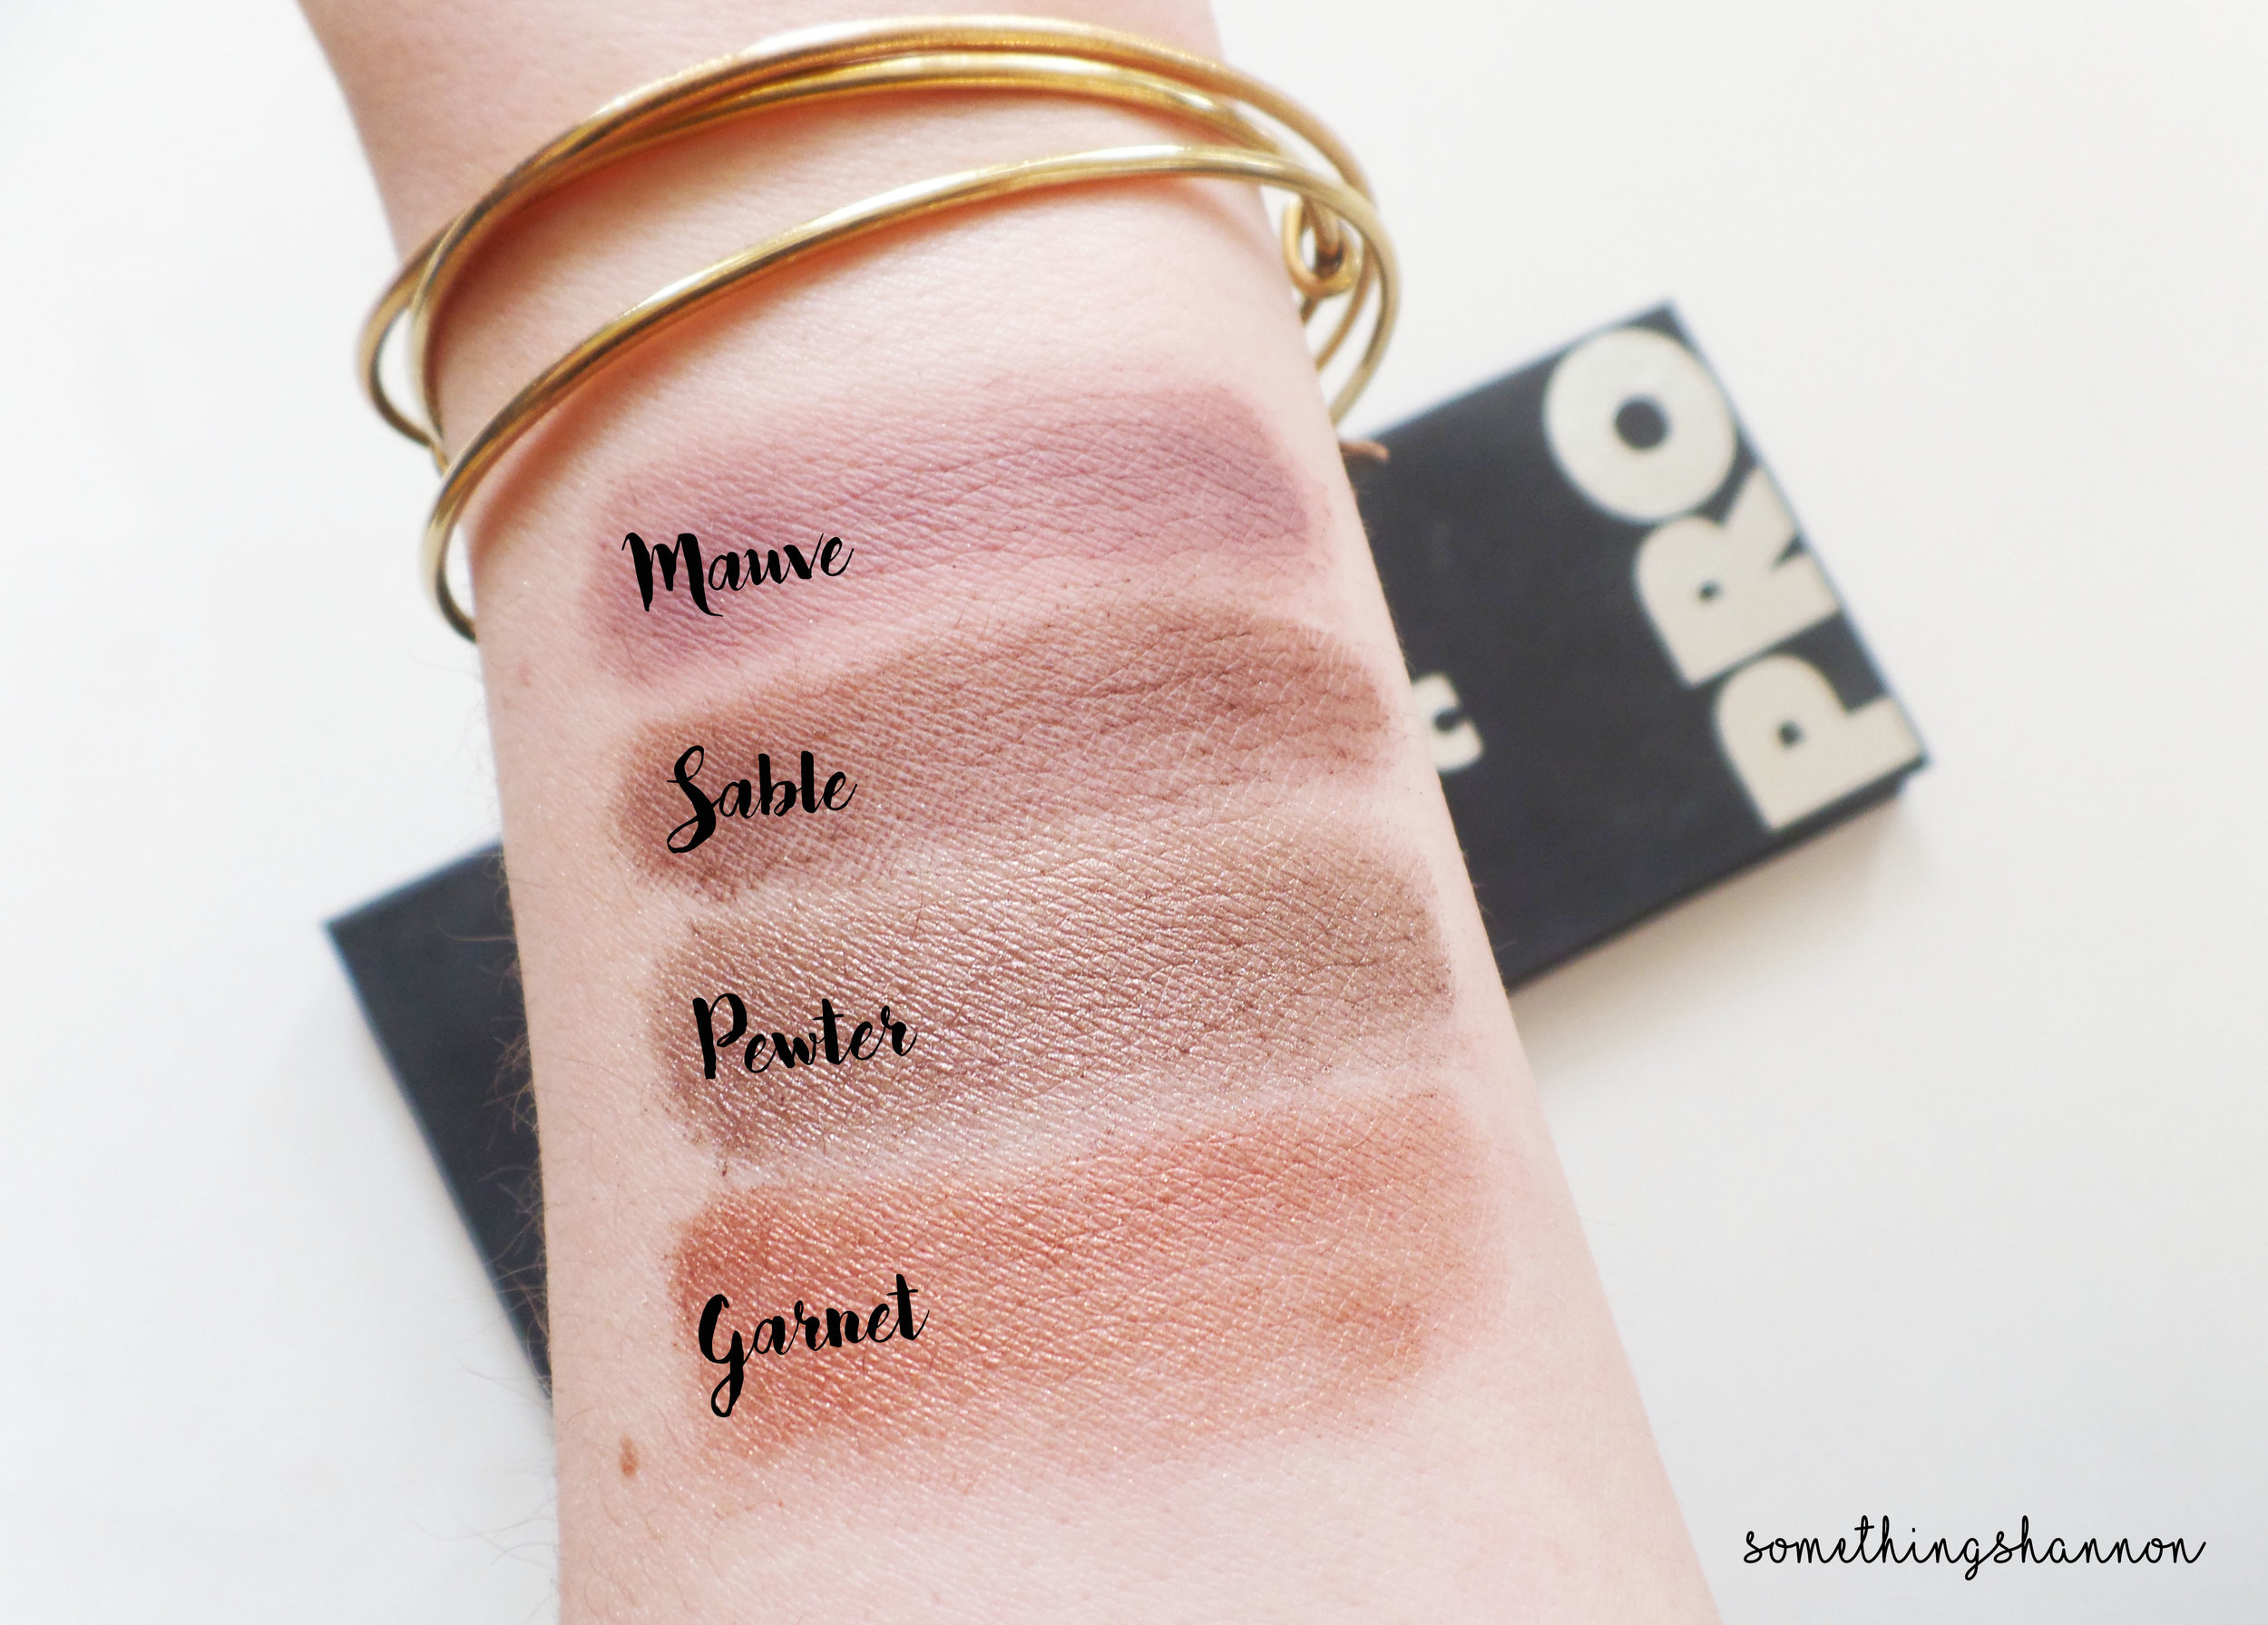 Lorac Review Swatches 3